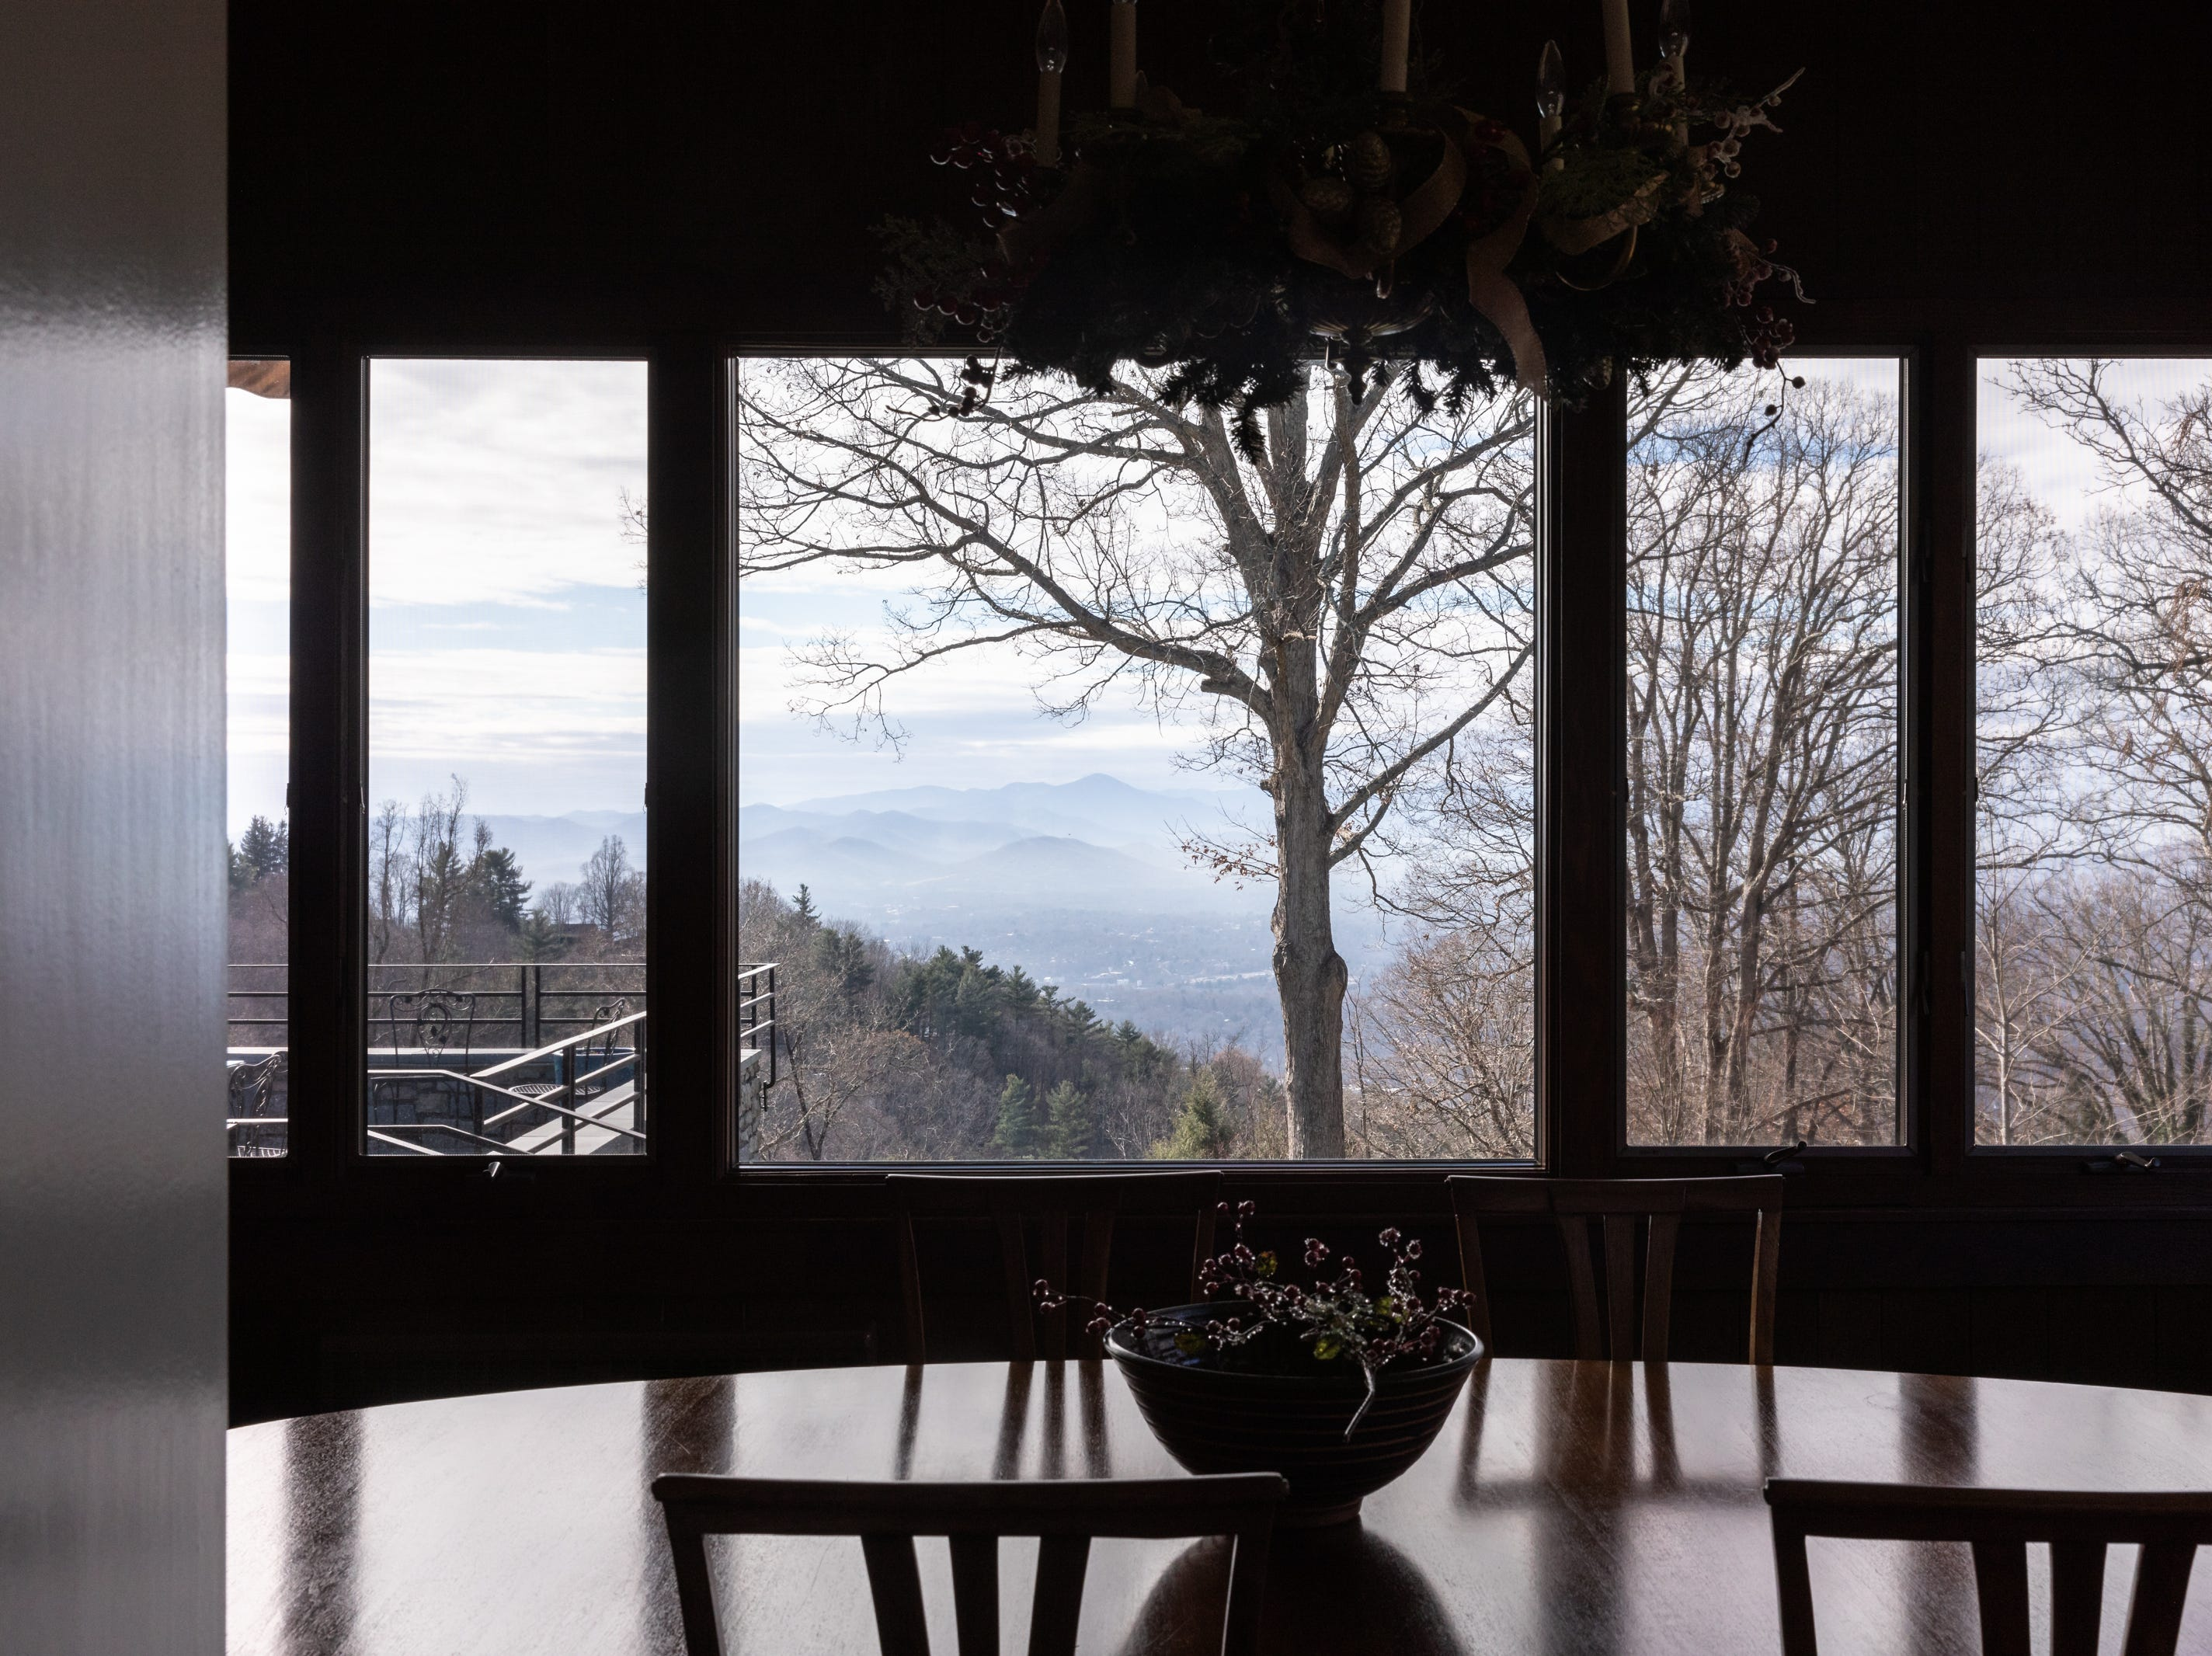 The view from the dining room of the Governor's Western Residence on Patton Mountain Road in Asheville.